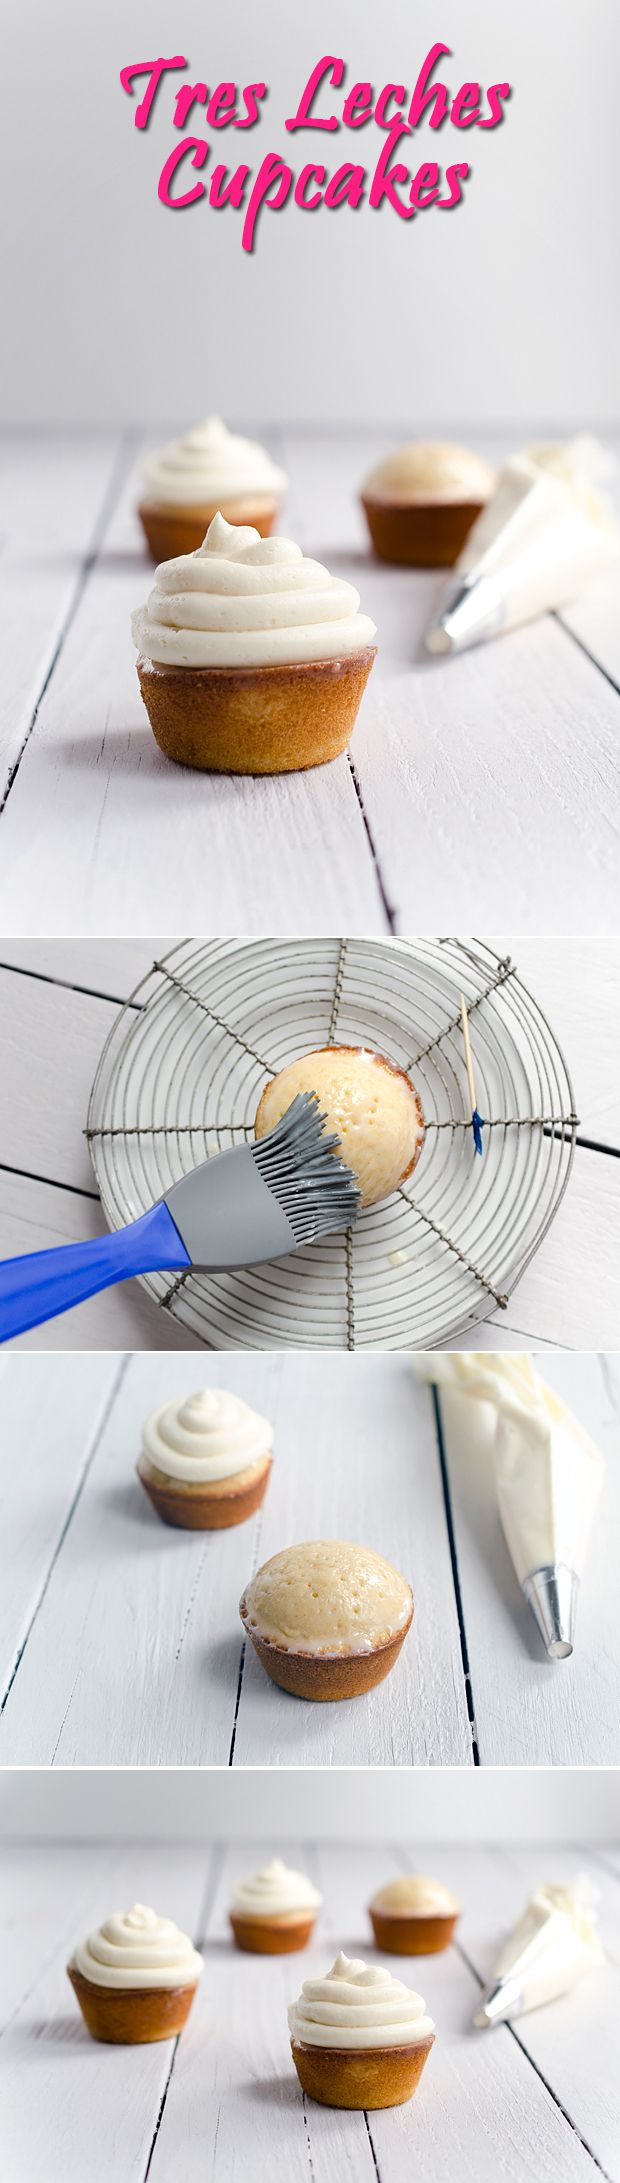 17 Best images about Spanish Project on Pinterest Tres leches